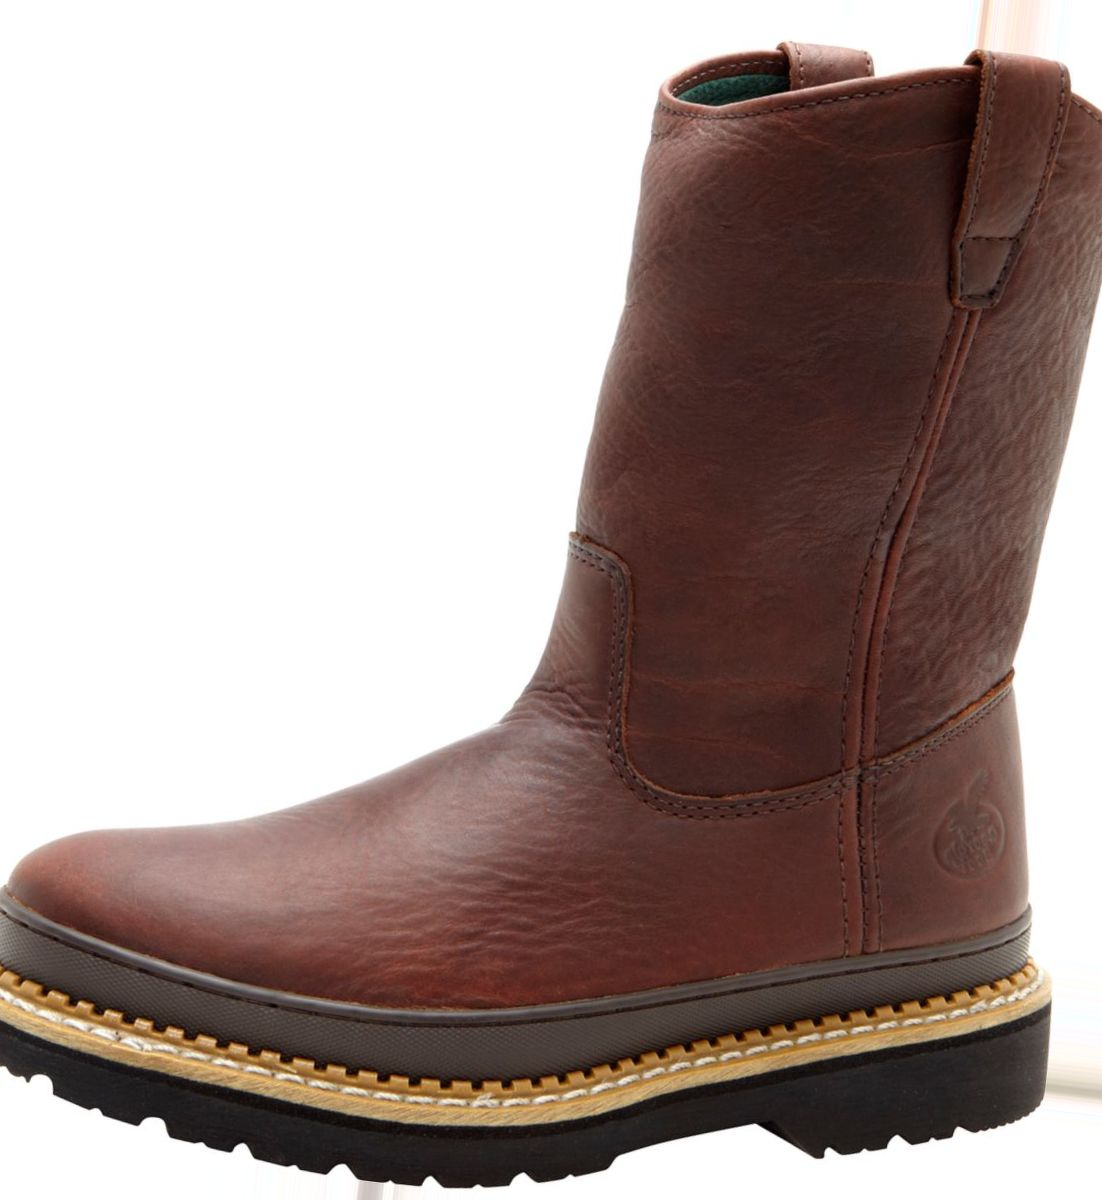 Georgia Boot® Men's Giant Pull-On Steel-Toe Boots